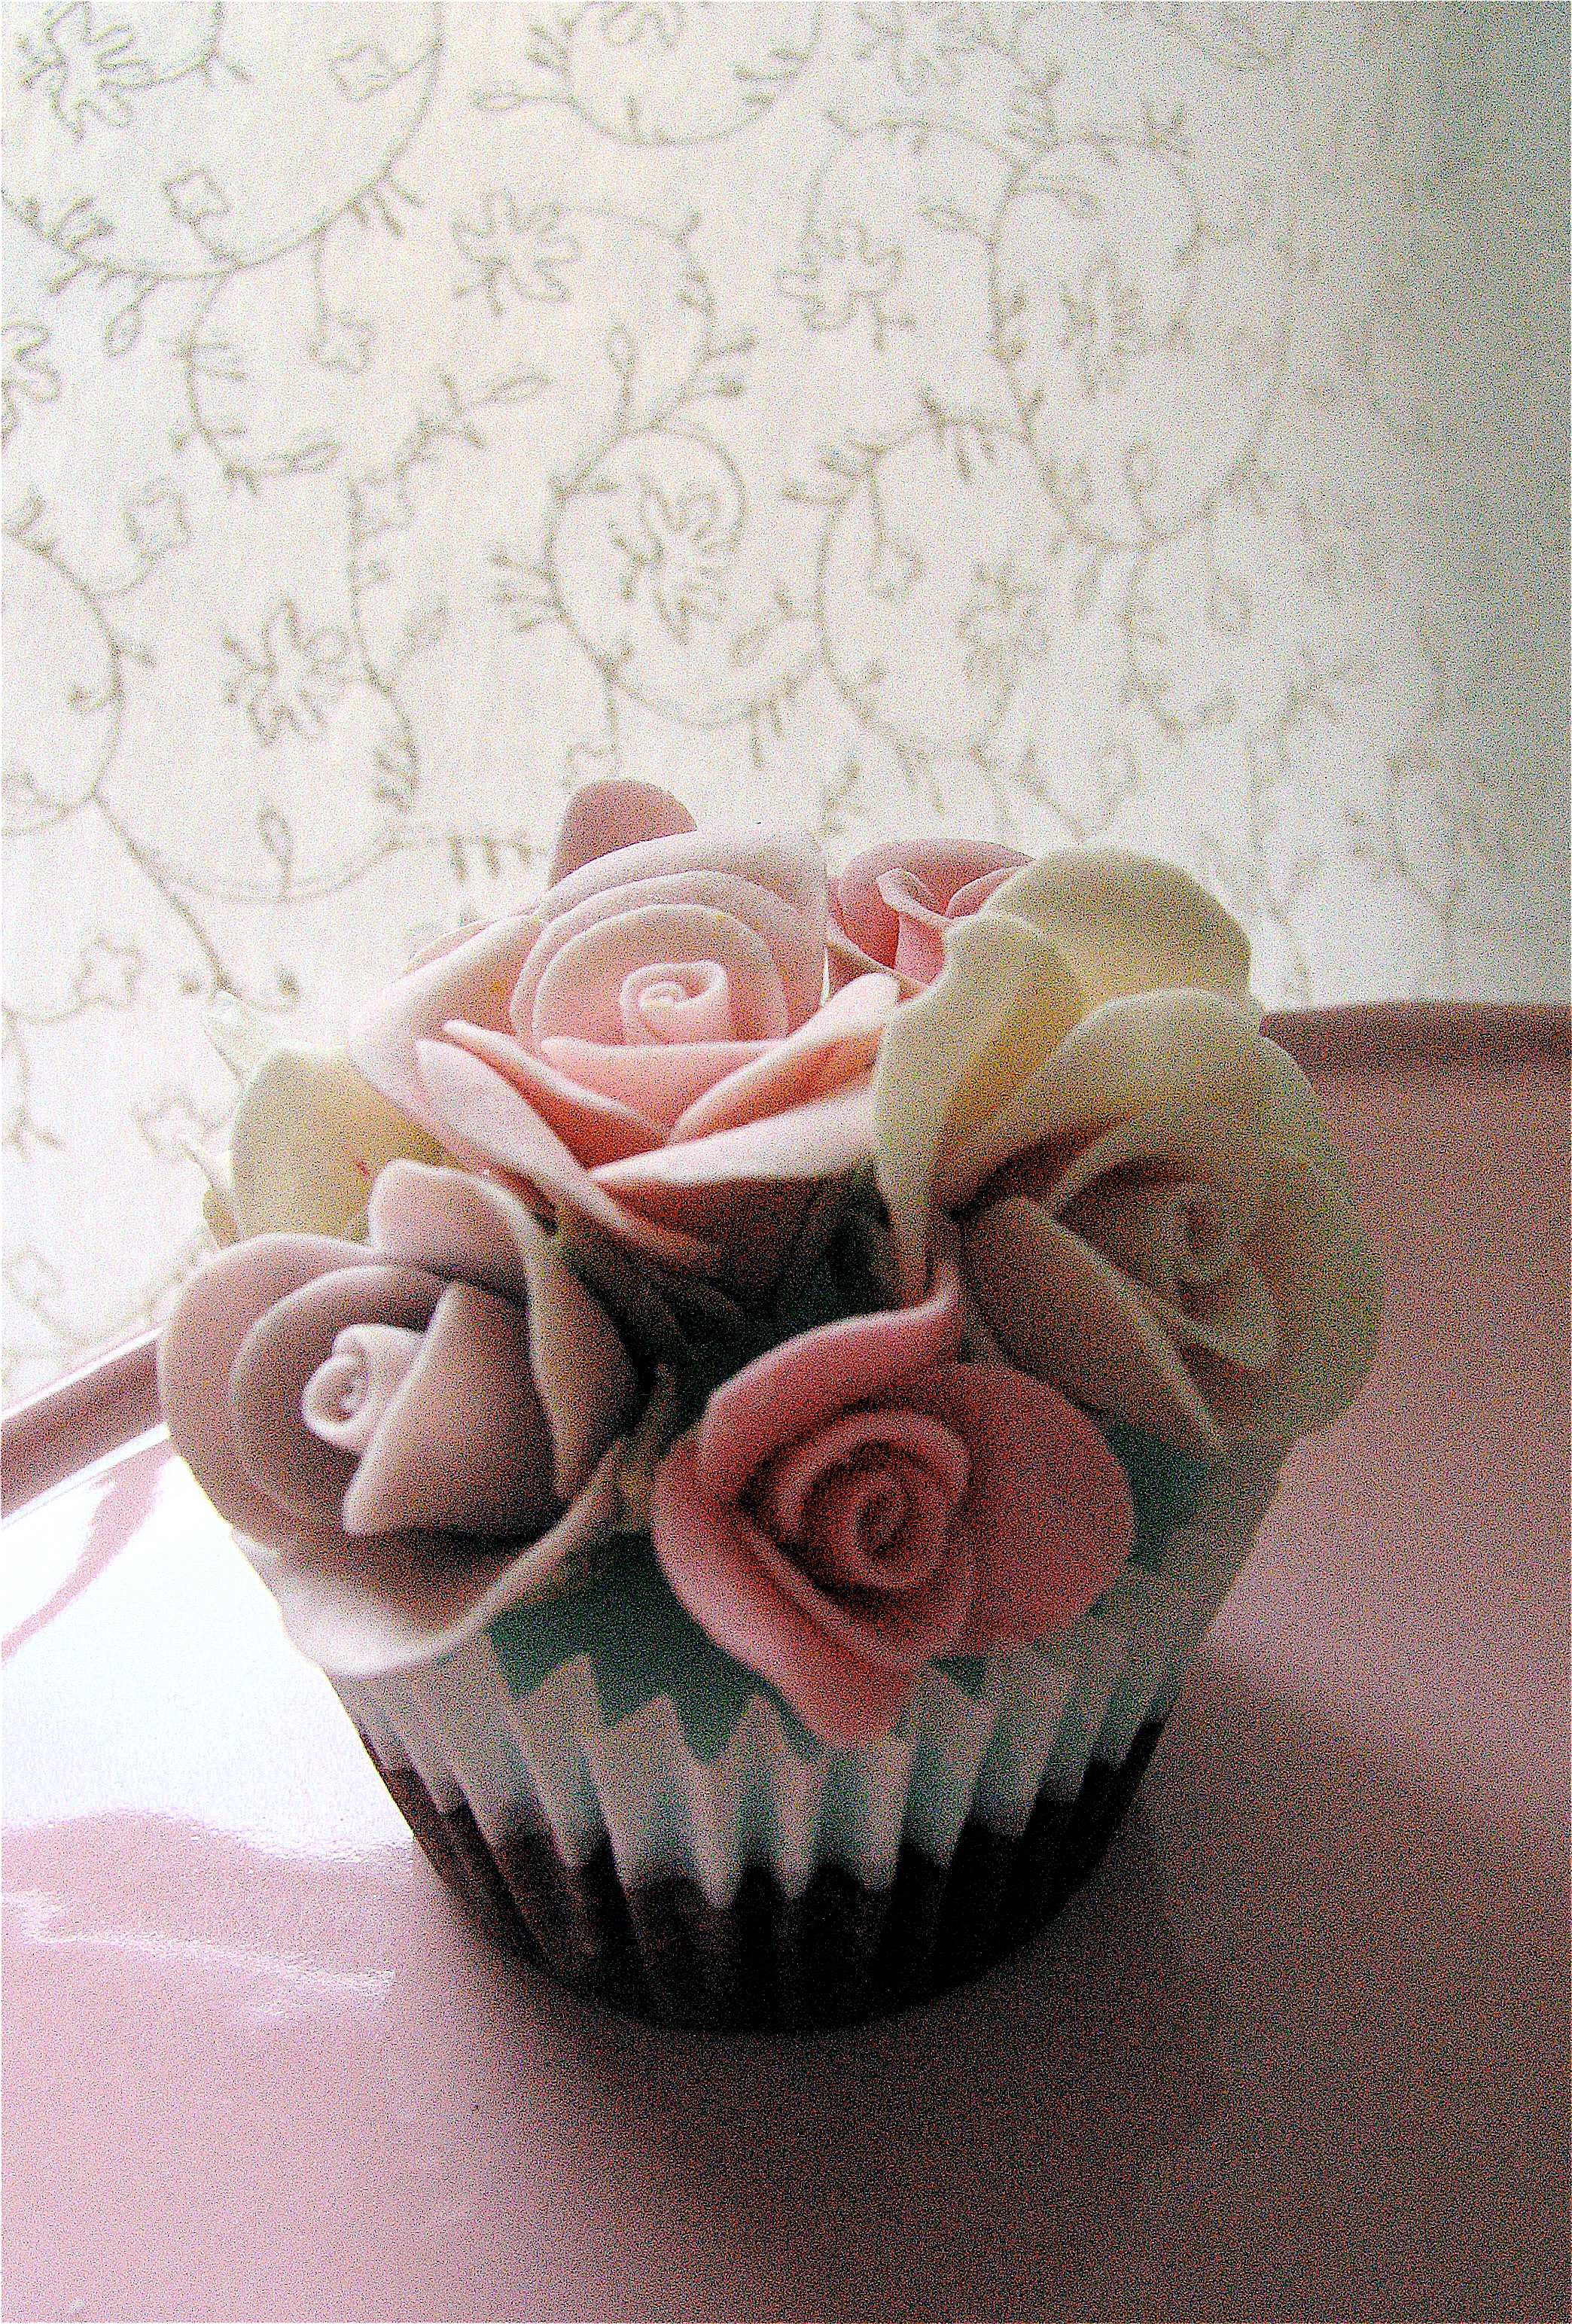 rose shabby chic cupcake flickr photo sharing. Black Bedroom Furniture Sets. Home Design Ideas